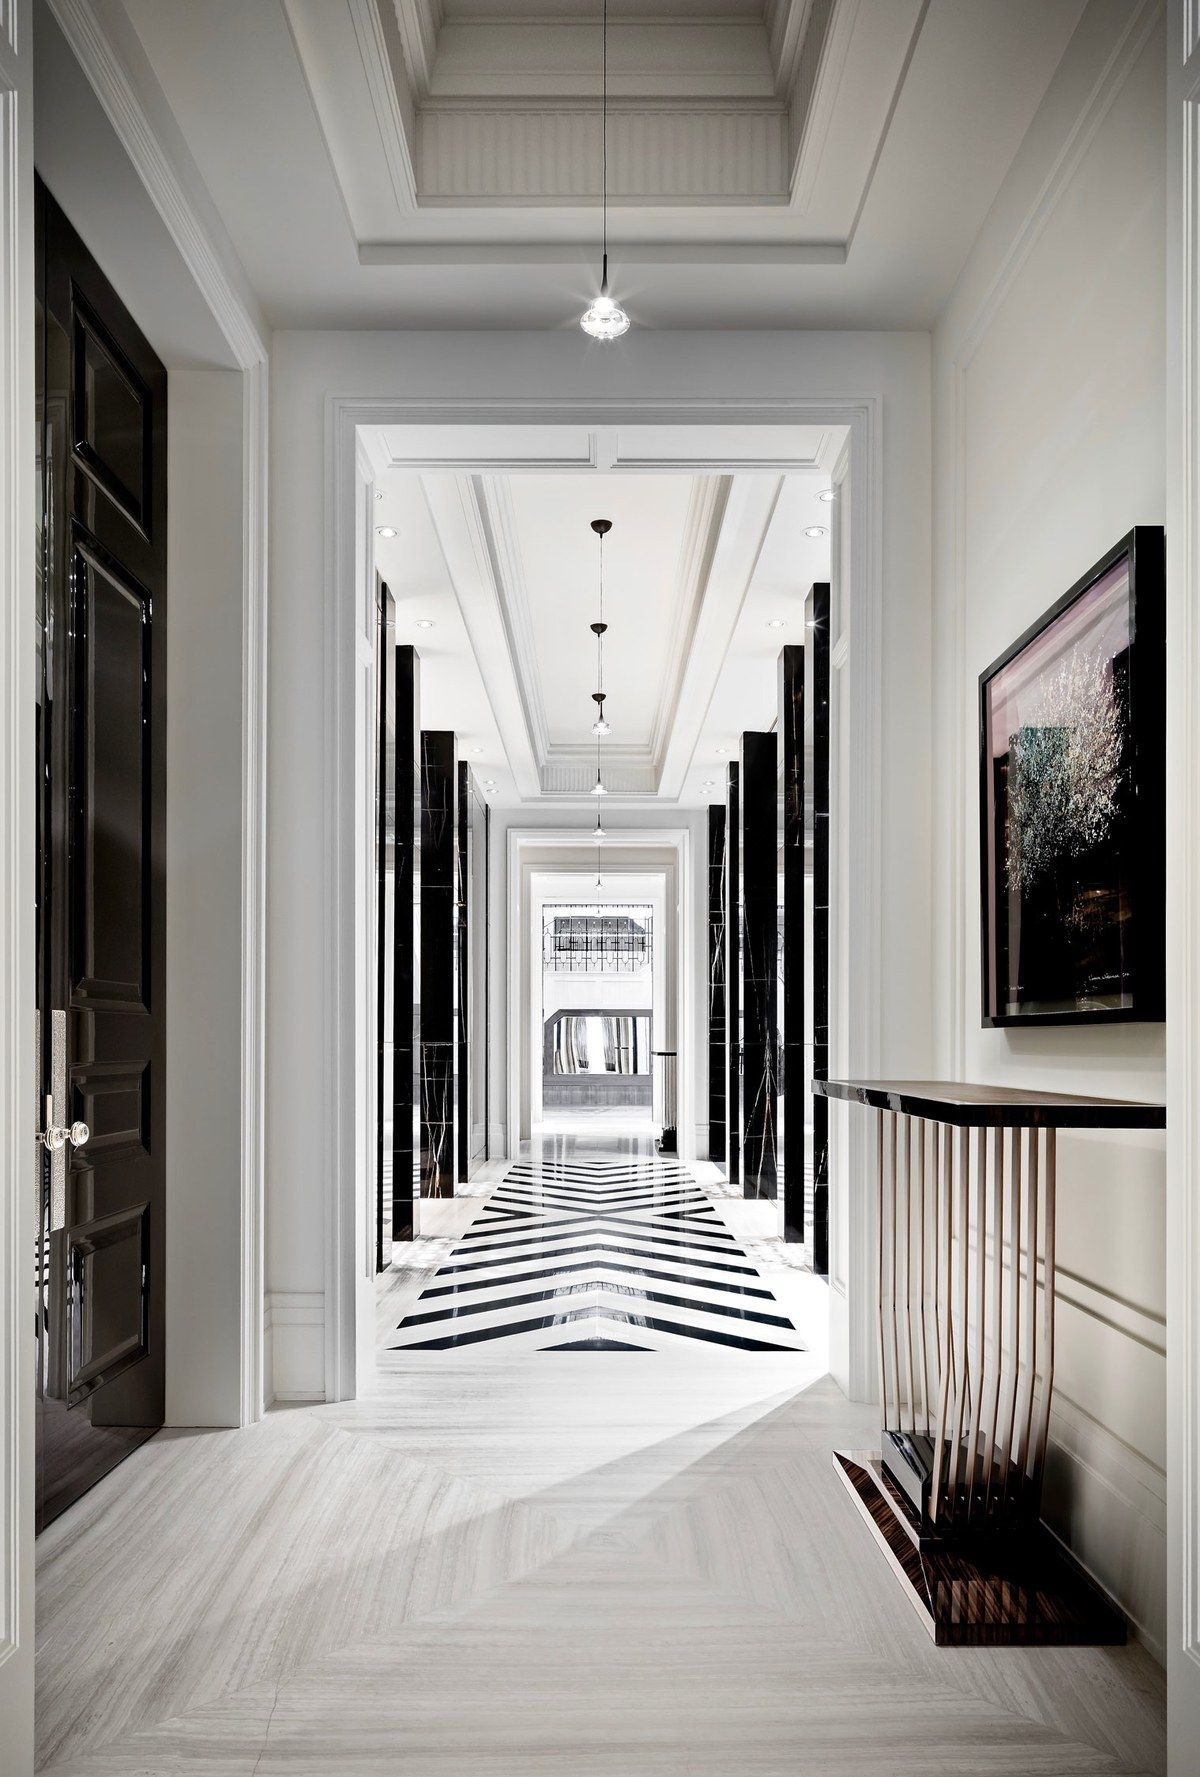 This black and white hallway isnt the only mesmerizing thing about this 50 million ferris rafauli designed home in toronto an unabashed ode to luxury